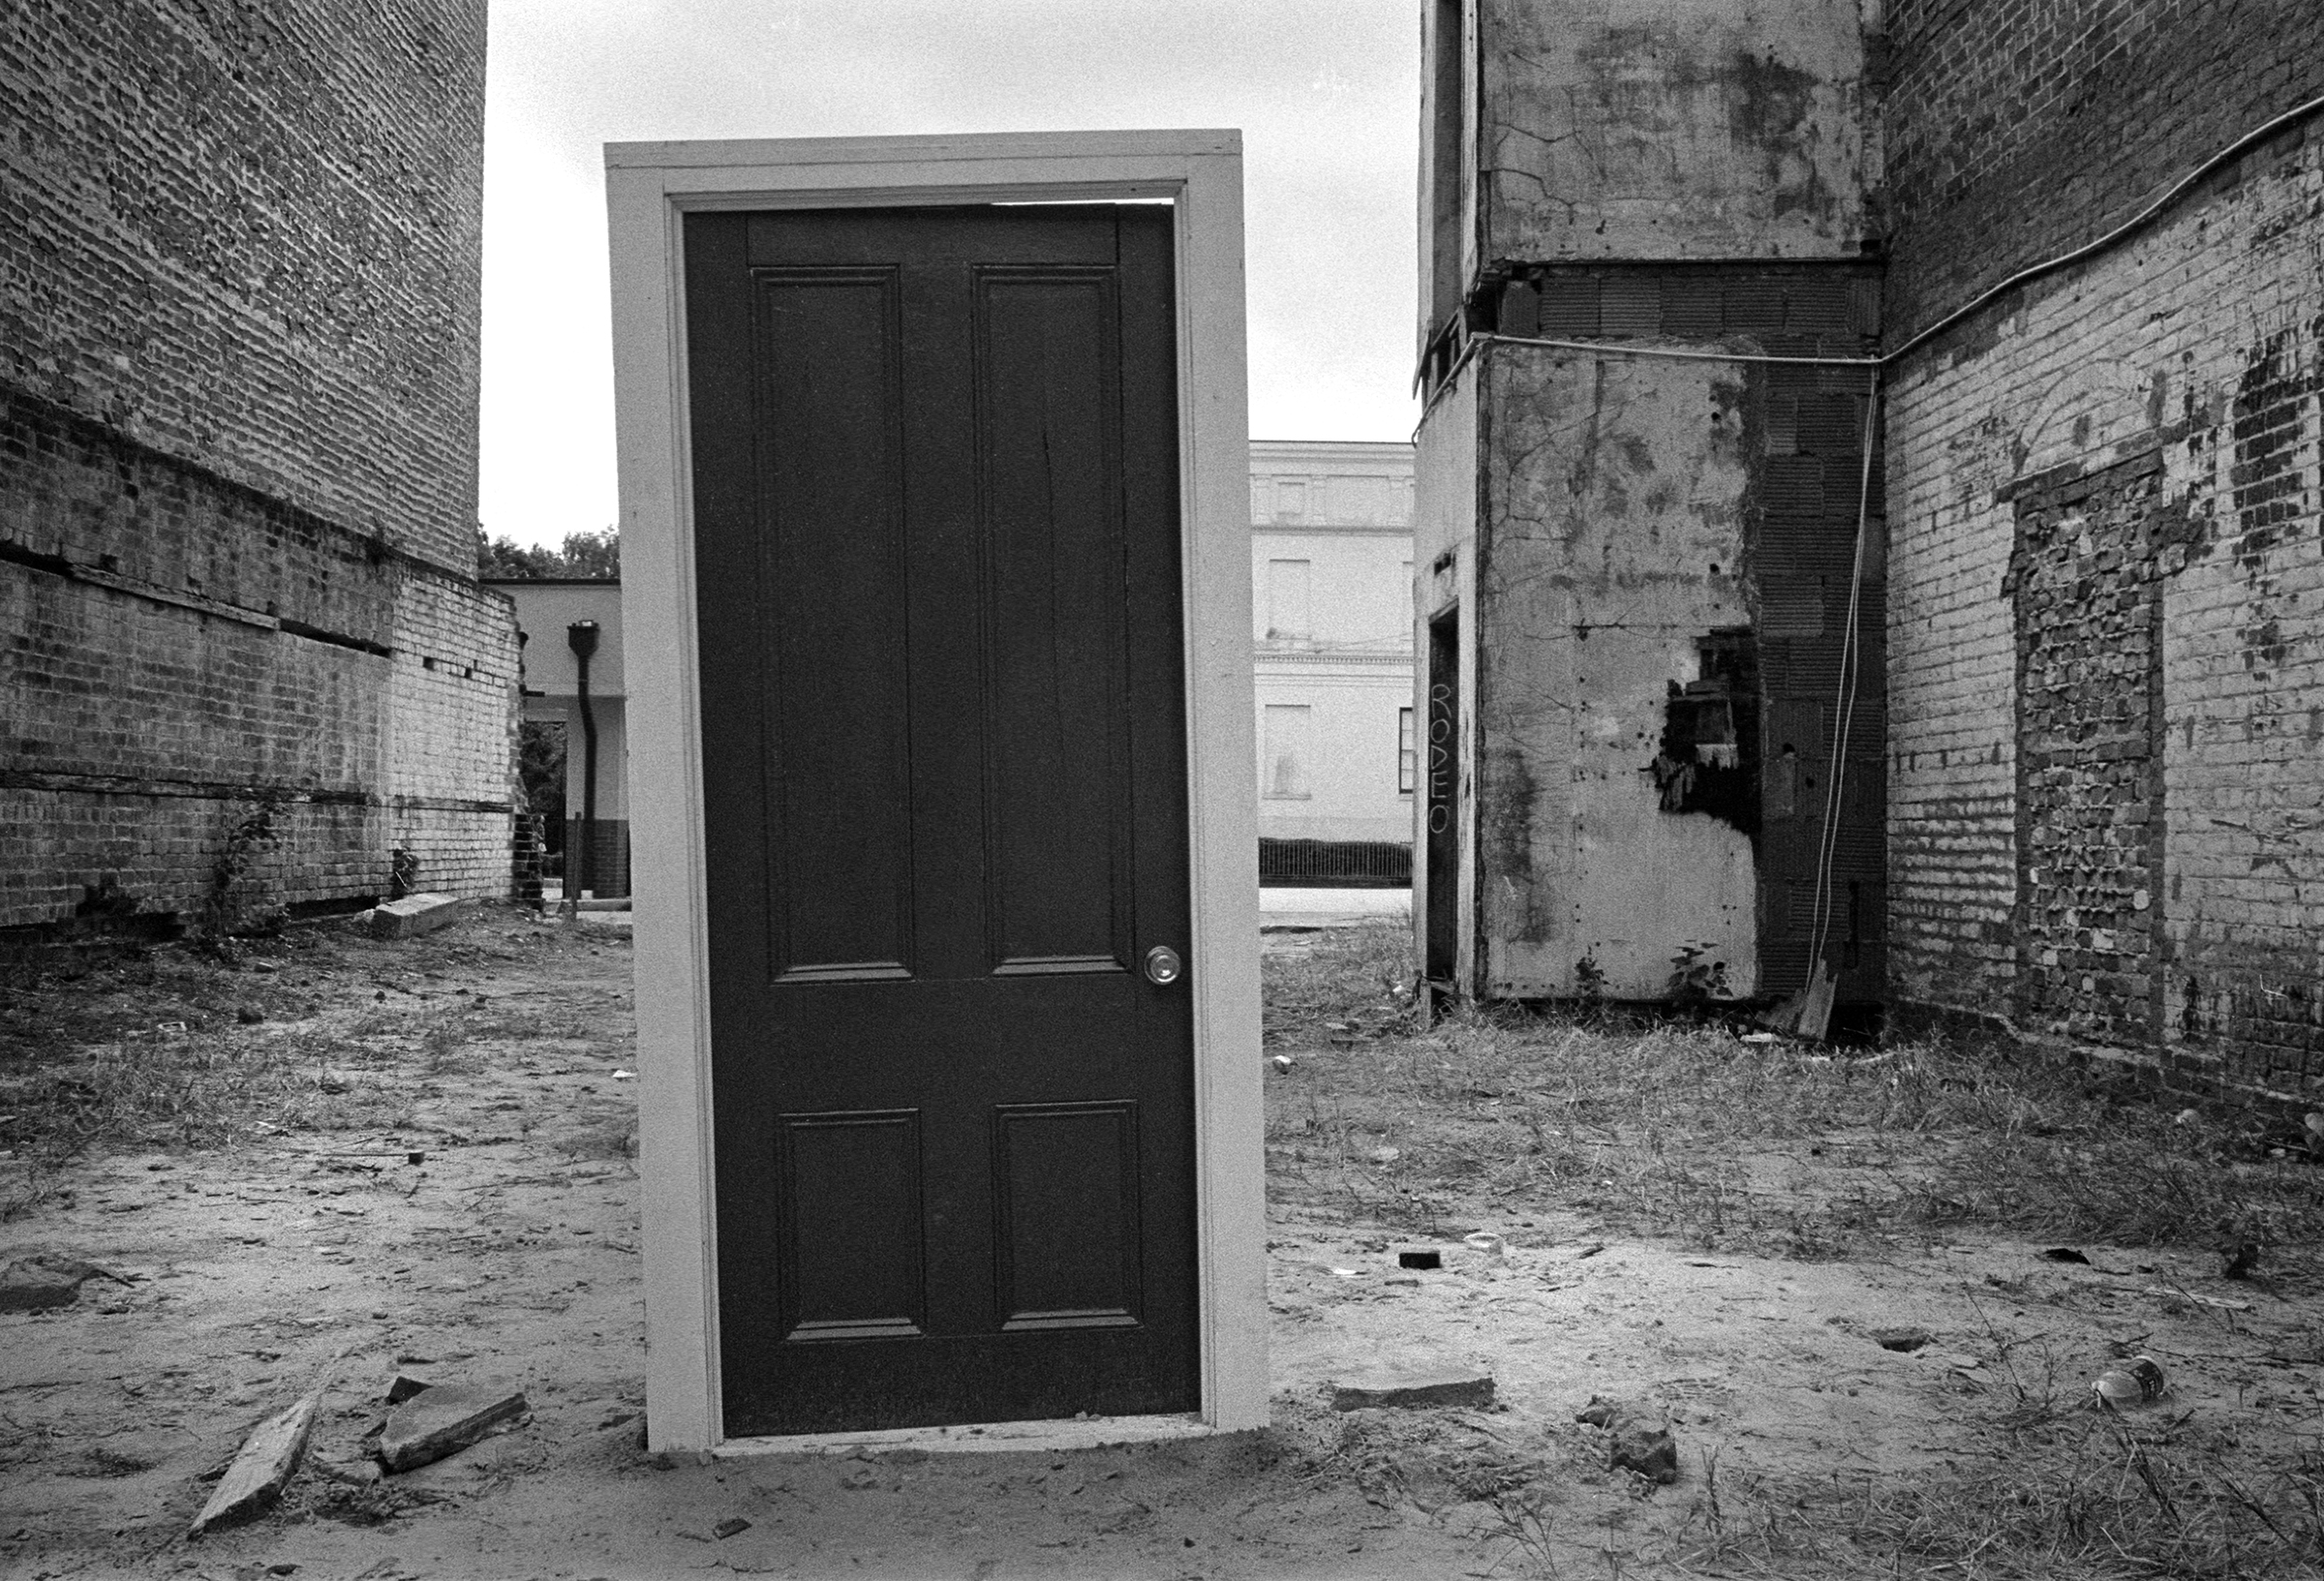 Door To Nowhere Savannah & Door To Nowhere Savannah | Ben Folds Photography Pezcame.Com